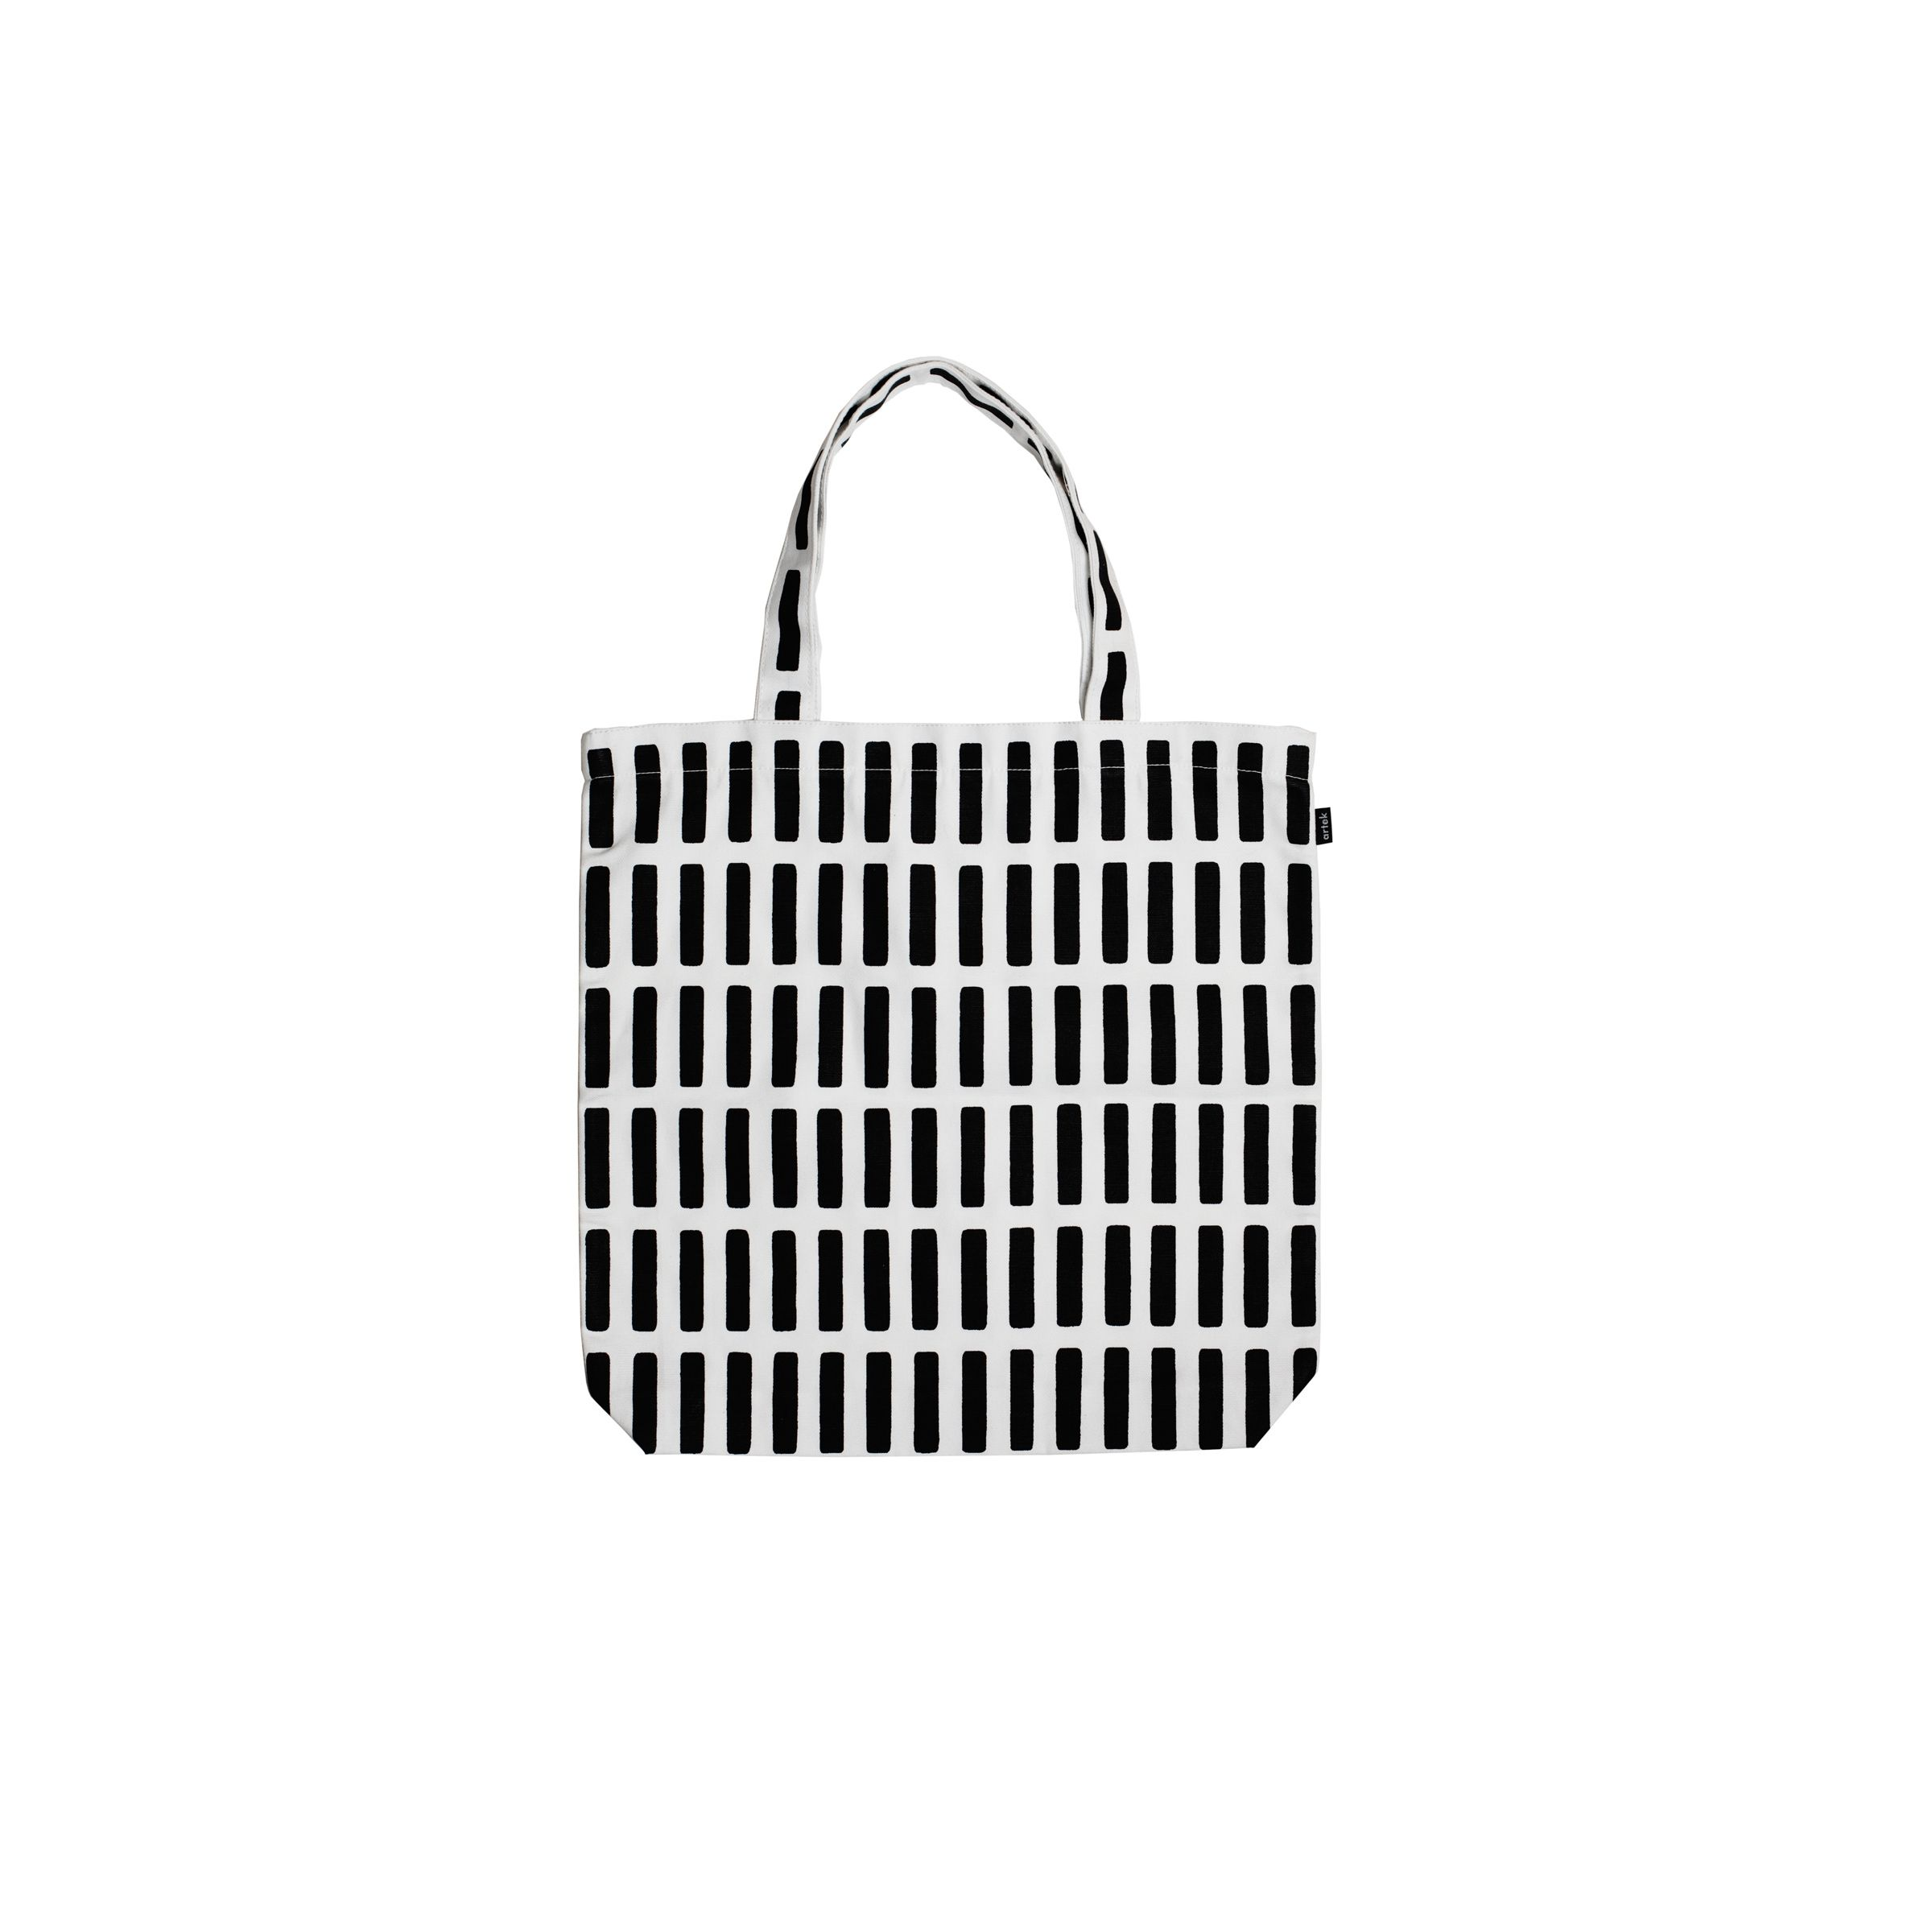 bag siena – abc collection – artek  artek usa  kitchen  - bag siena – abc collection – artek  artek usa